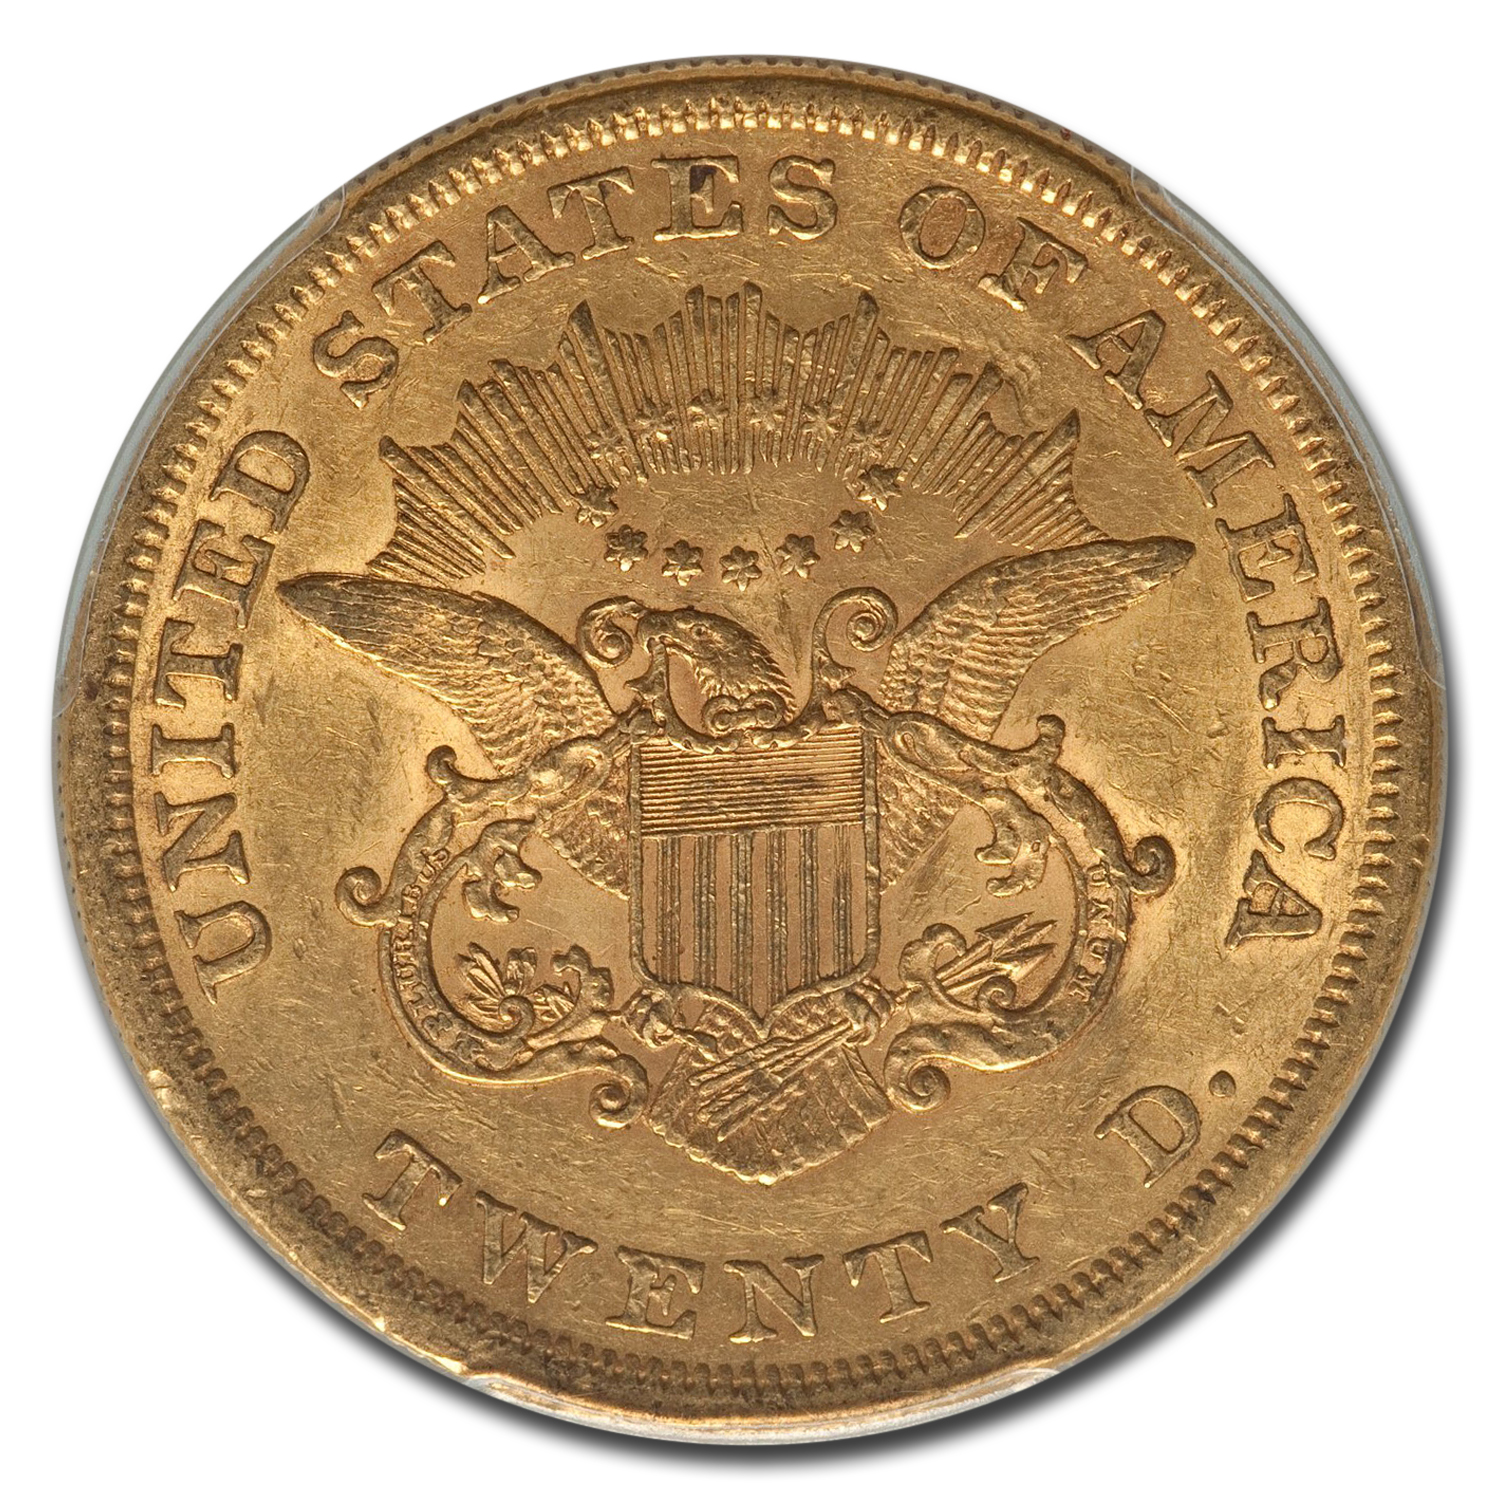 1861 $20 Gold Liberty Double Eagle - AU-55 PCGS